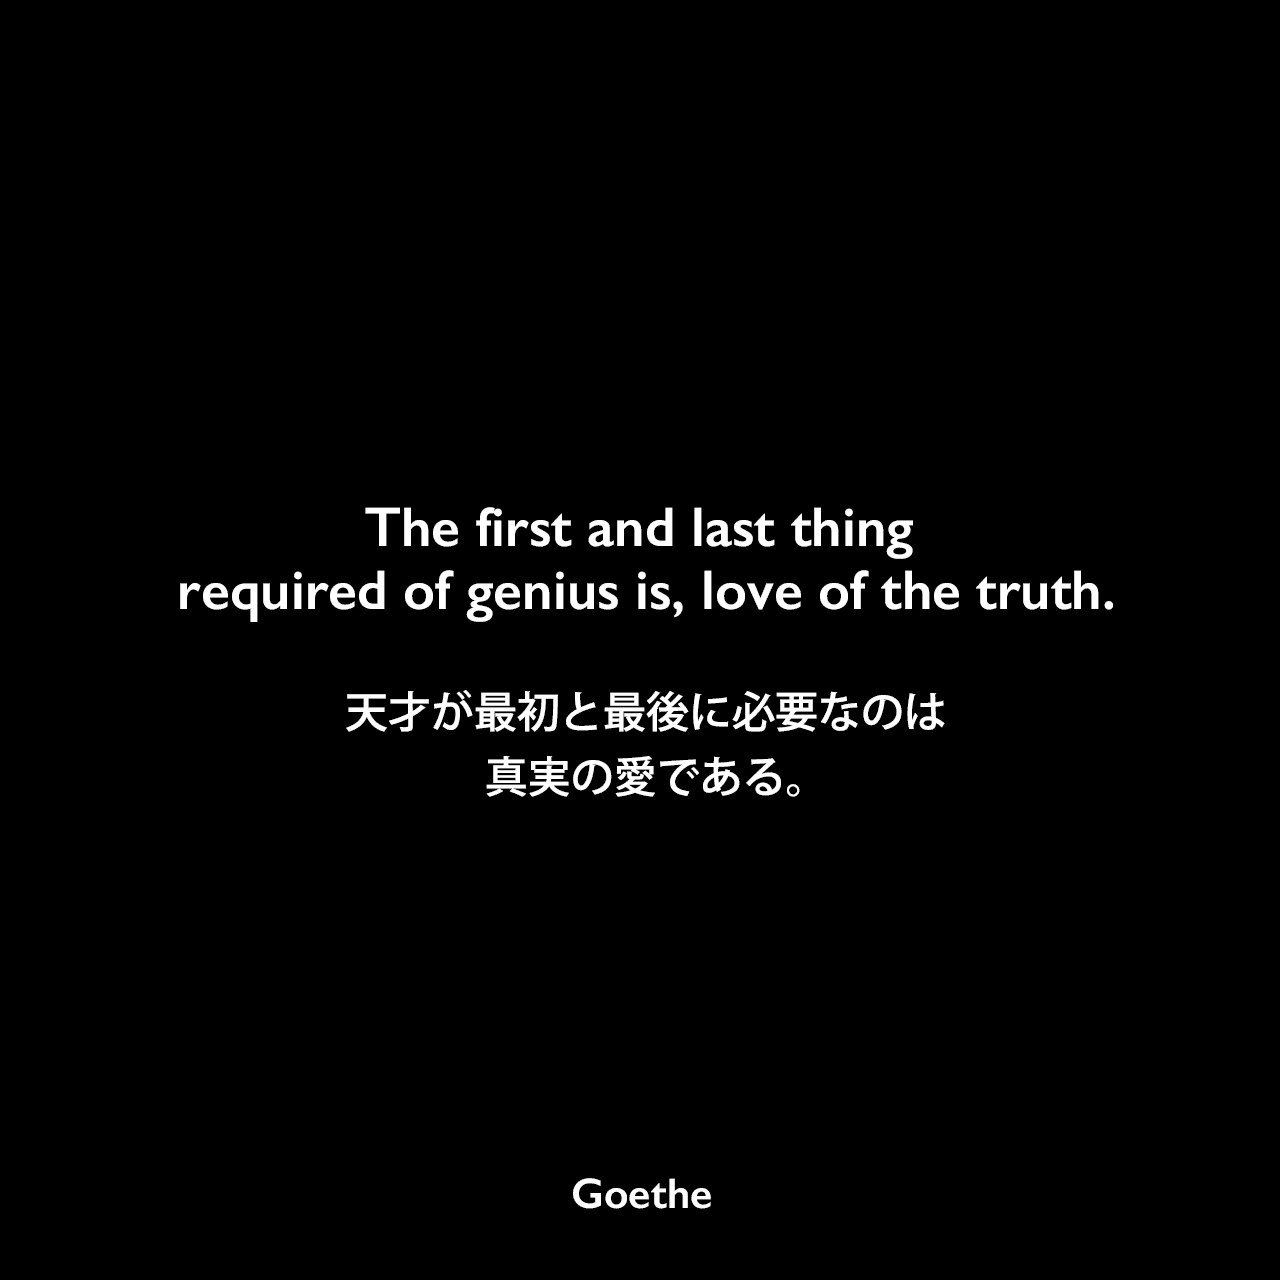 The first and last thing required of genius is, love of the truth.天才が最初と最後に必要なのは、真実の愛である。Johann Wolfgang von Goethe